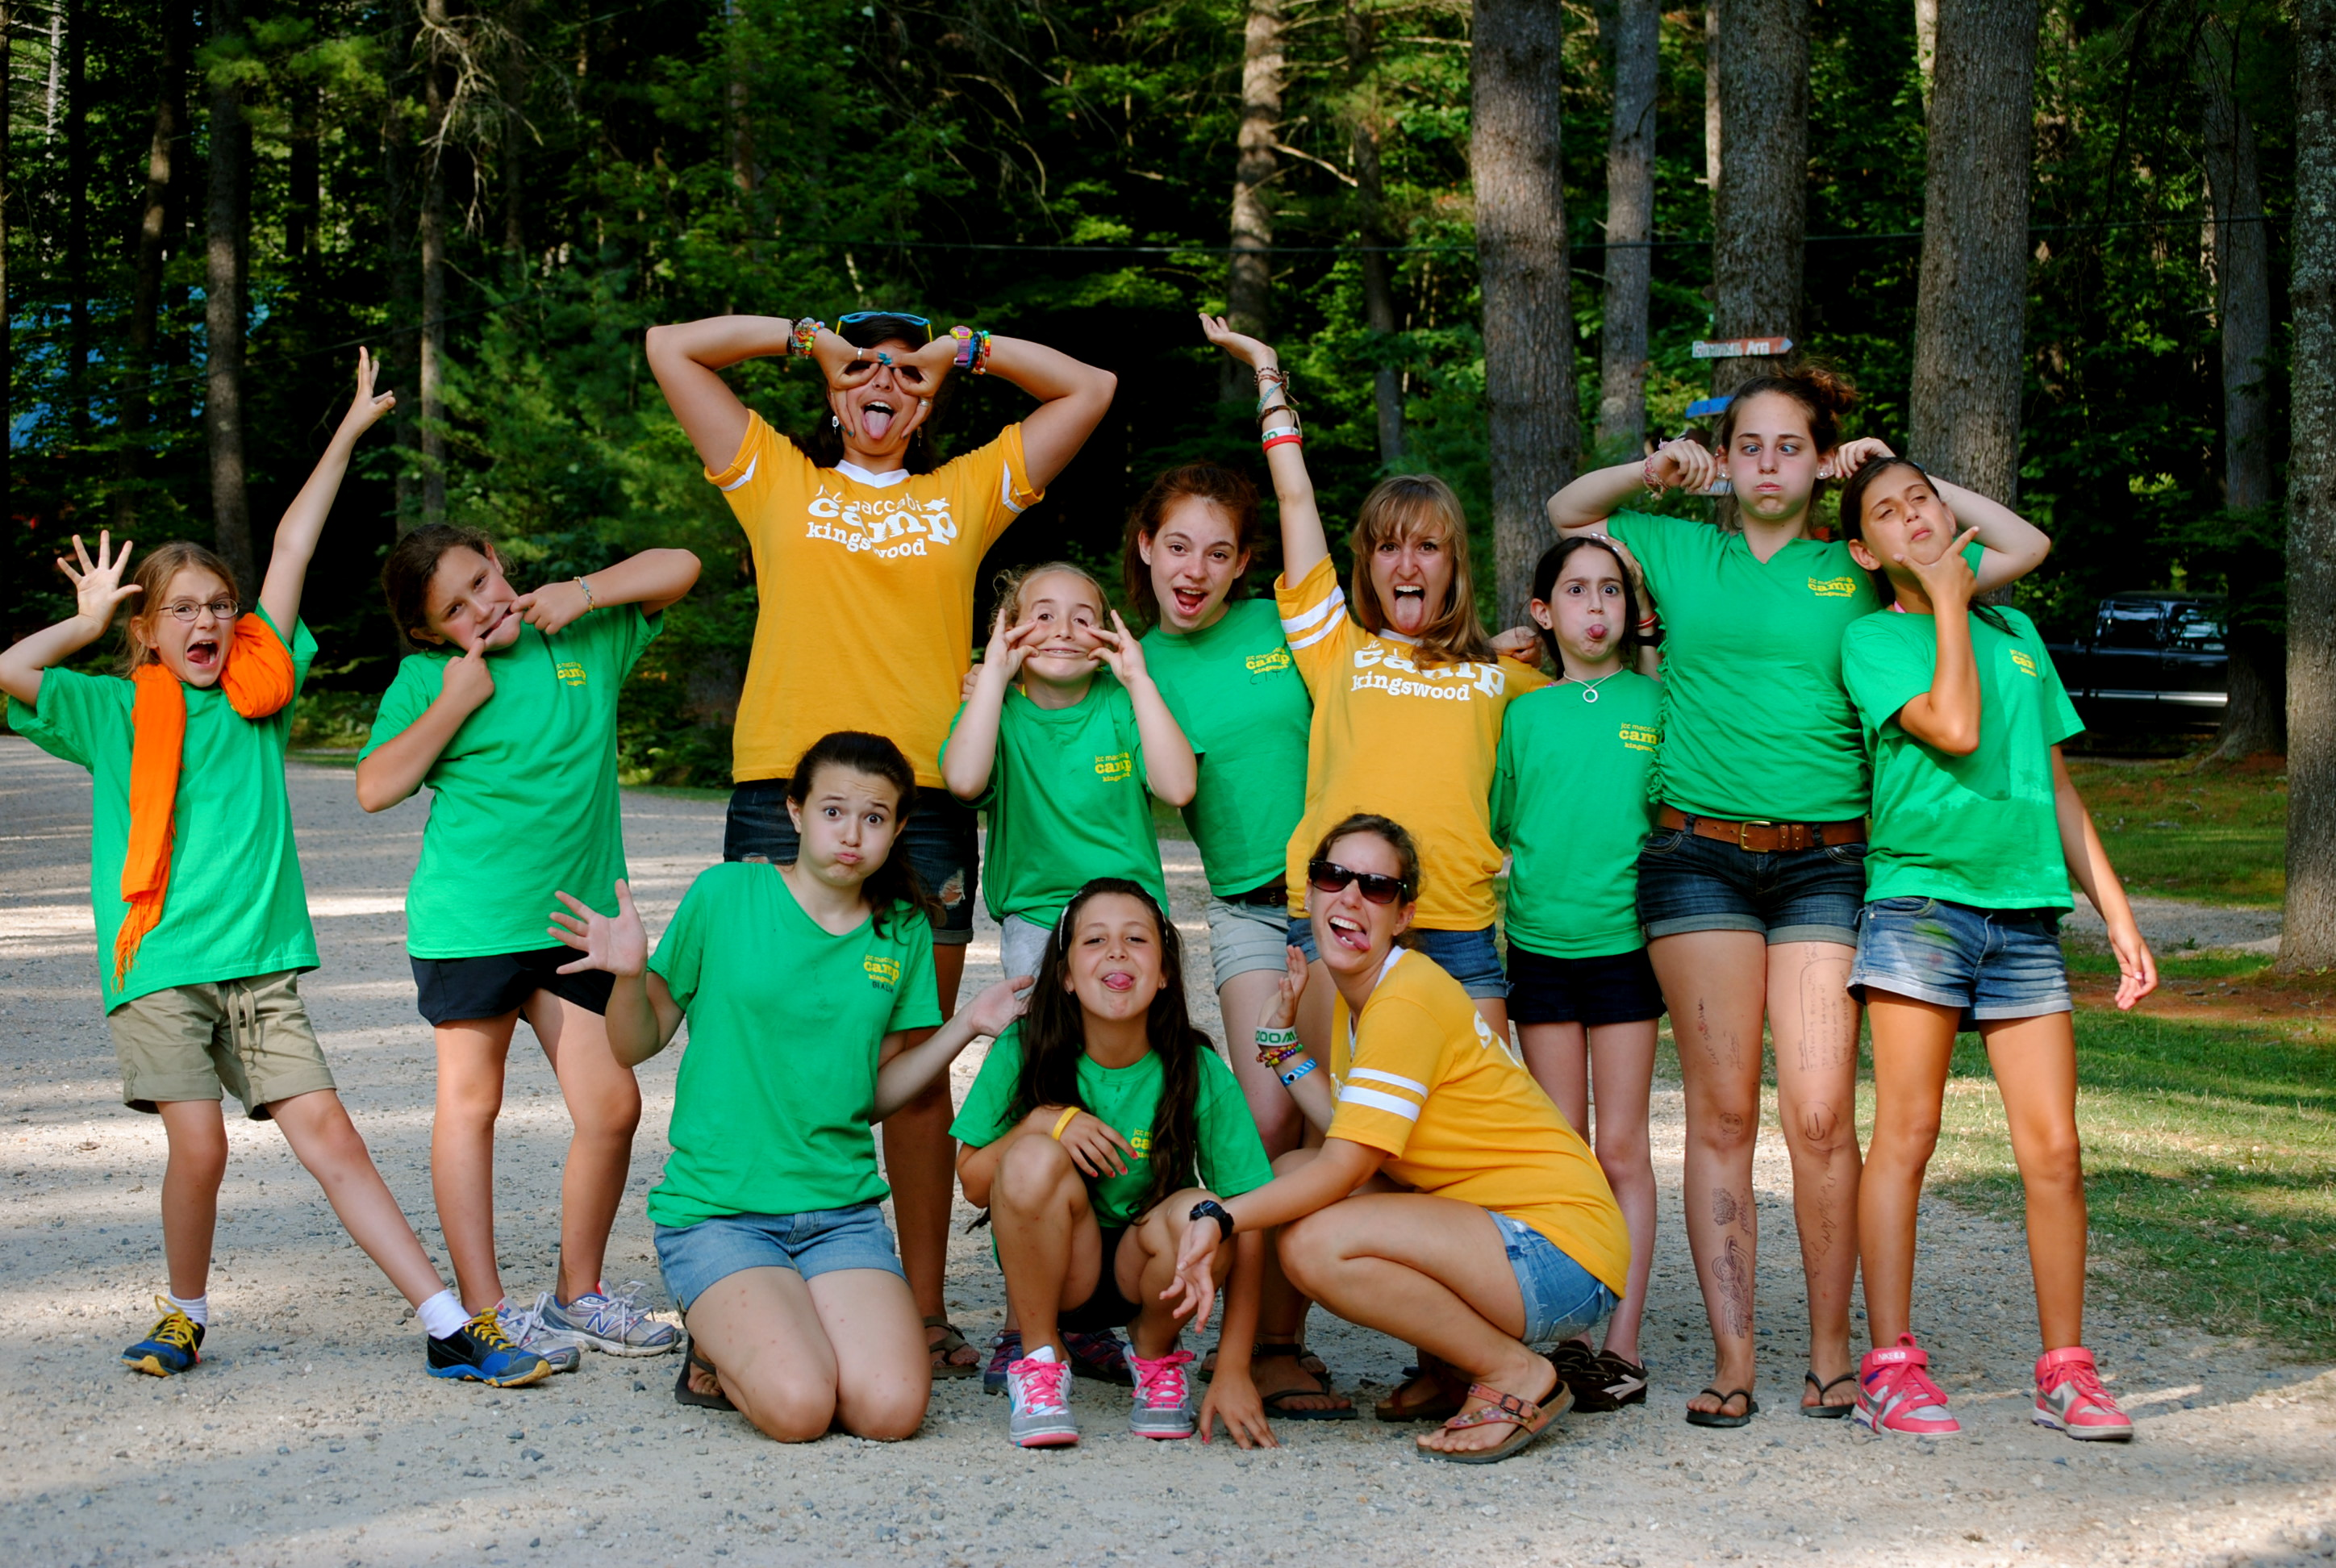 Jcc Camp Kingswood A Place To Be Active A Place To Make Life Long Friends A Place To Build